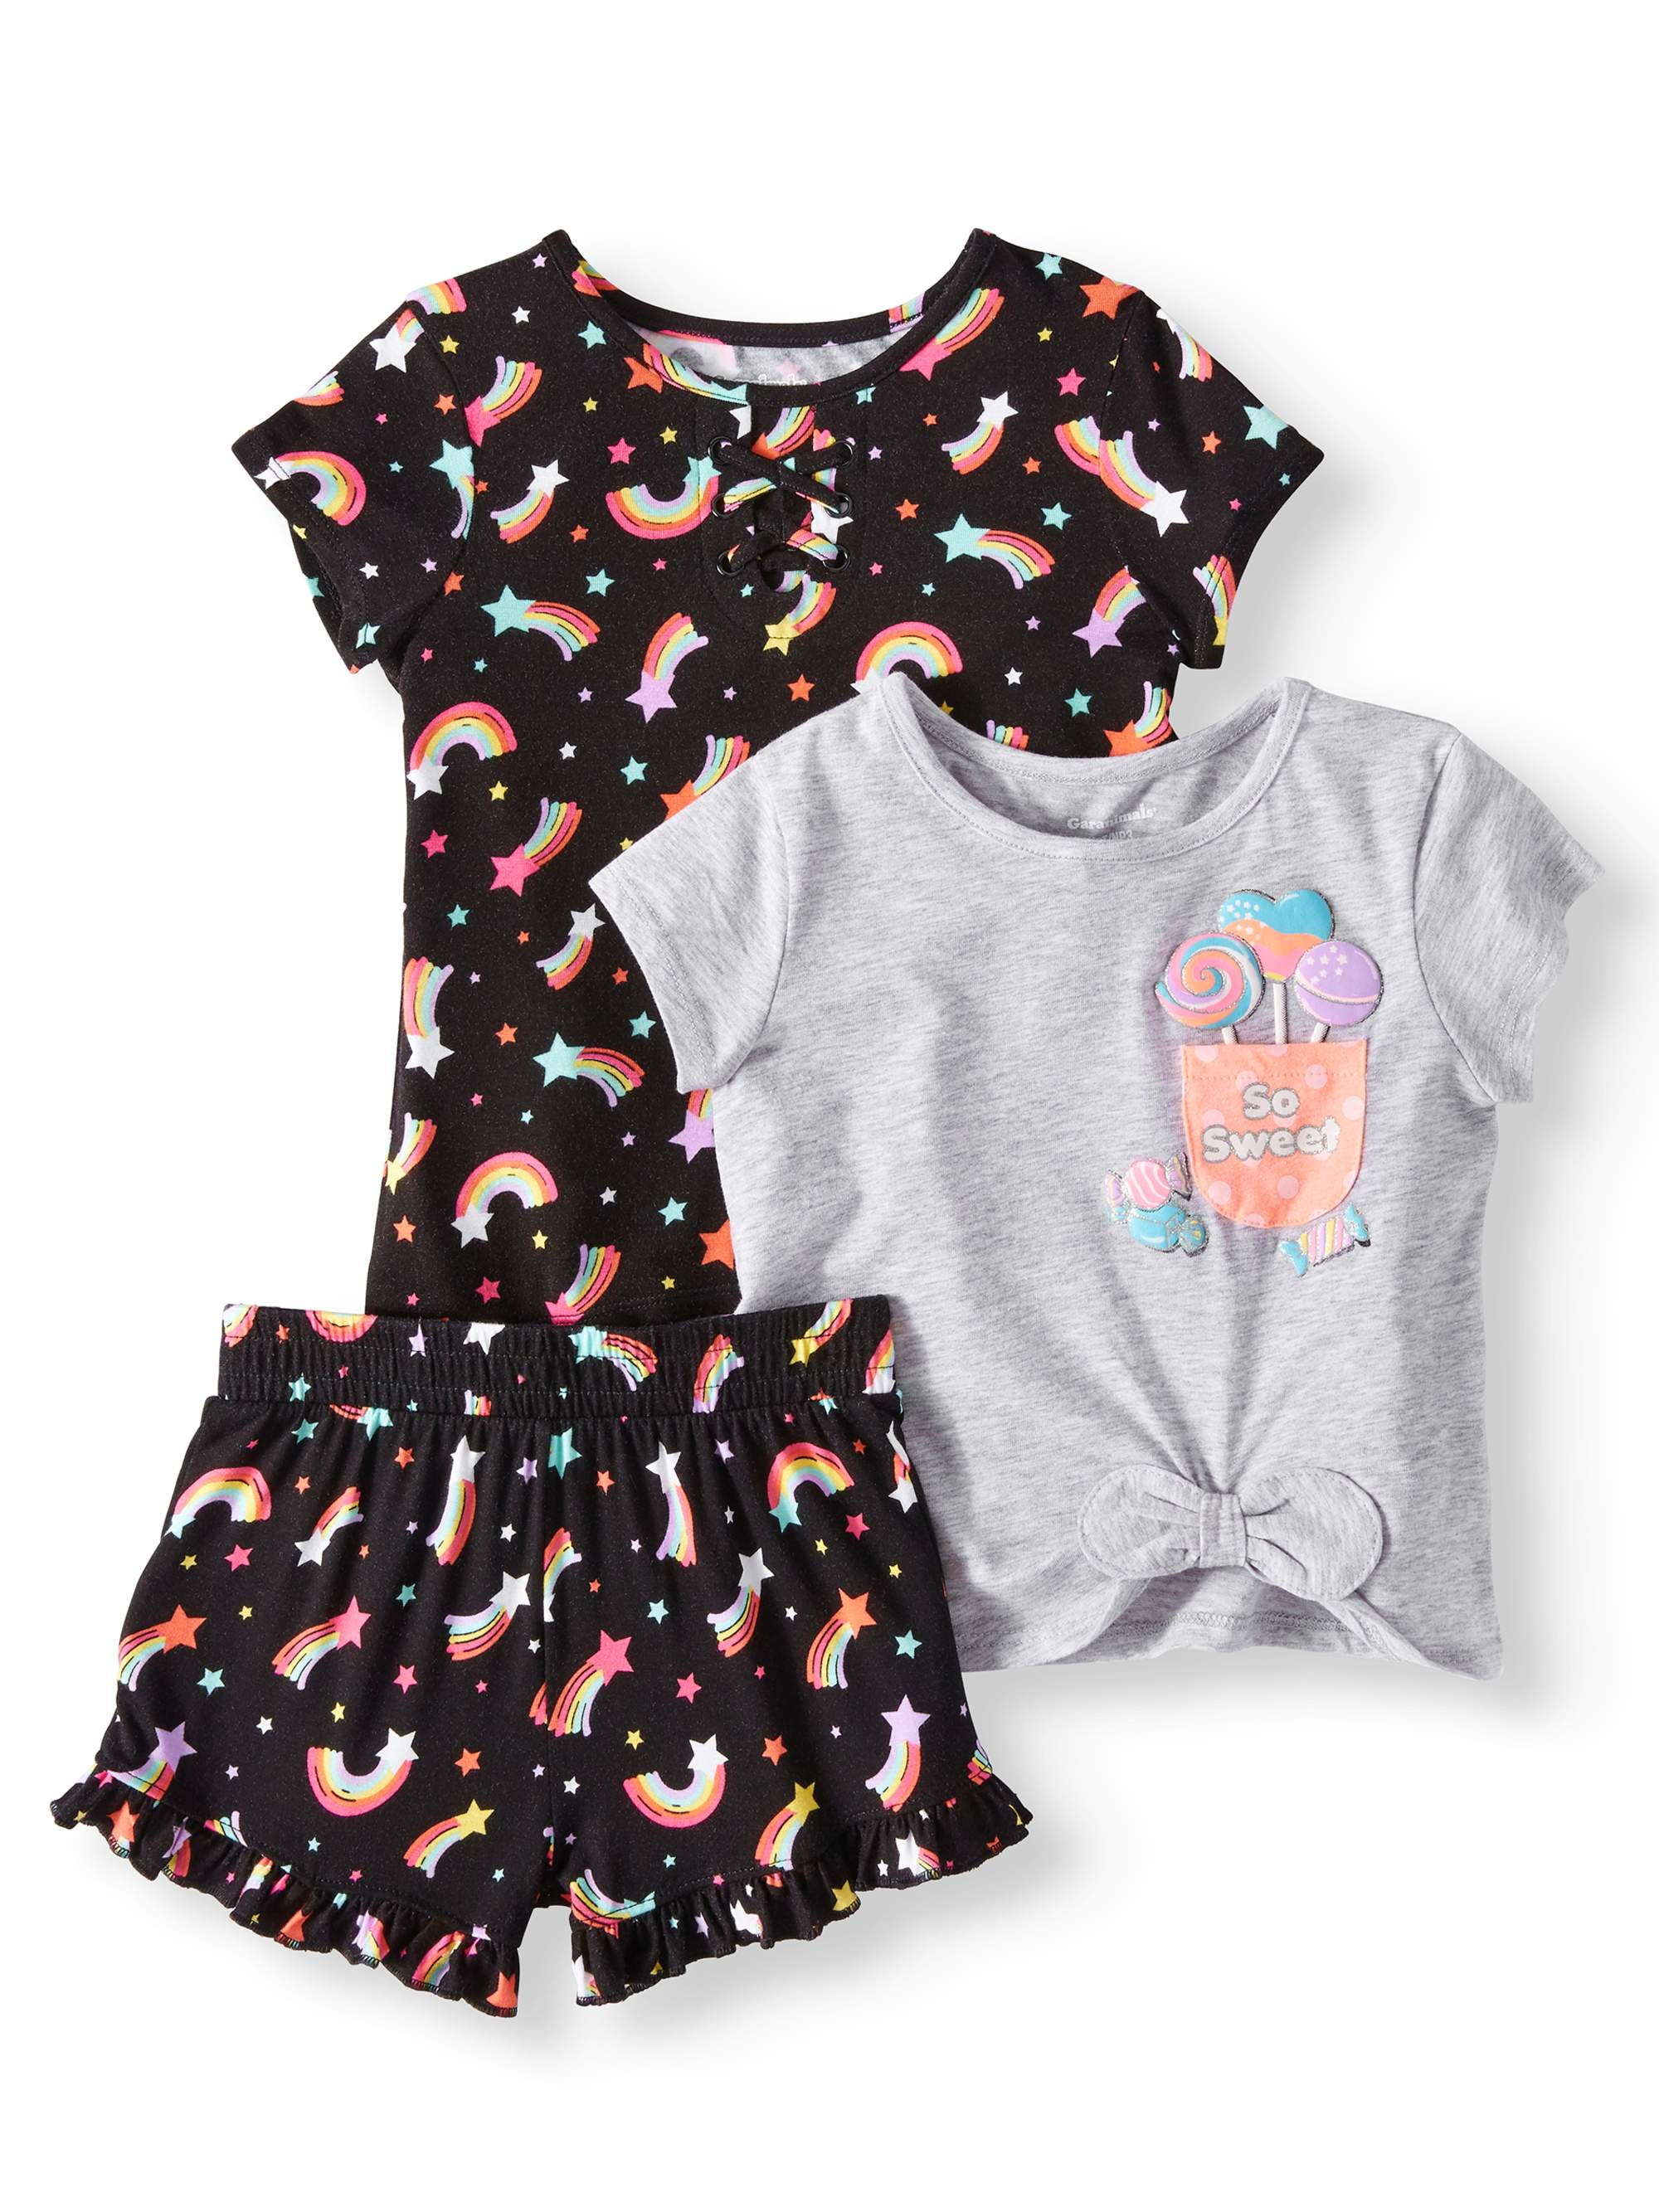 Lace-Up Top, Side-Tie Top, & Printed Ruffle Shorts, 3pc Outfit Set (Toddler Girls)